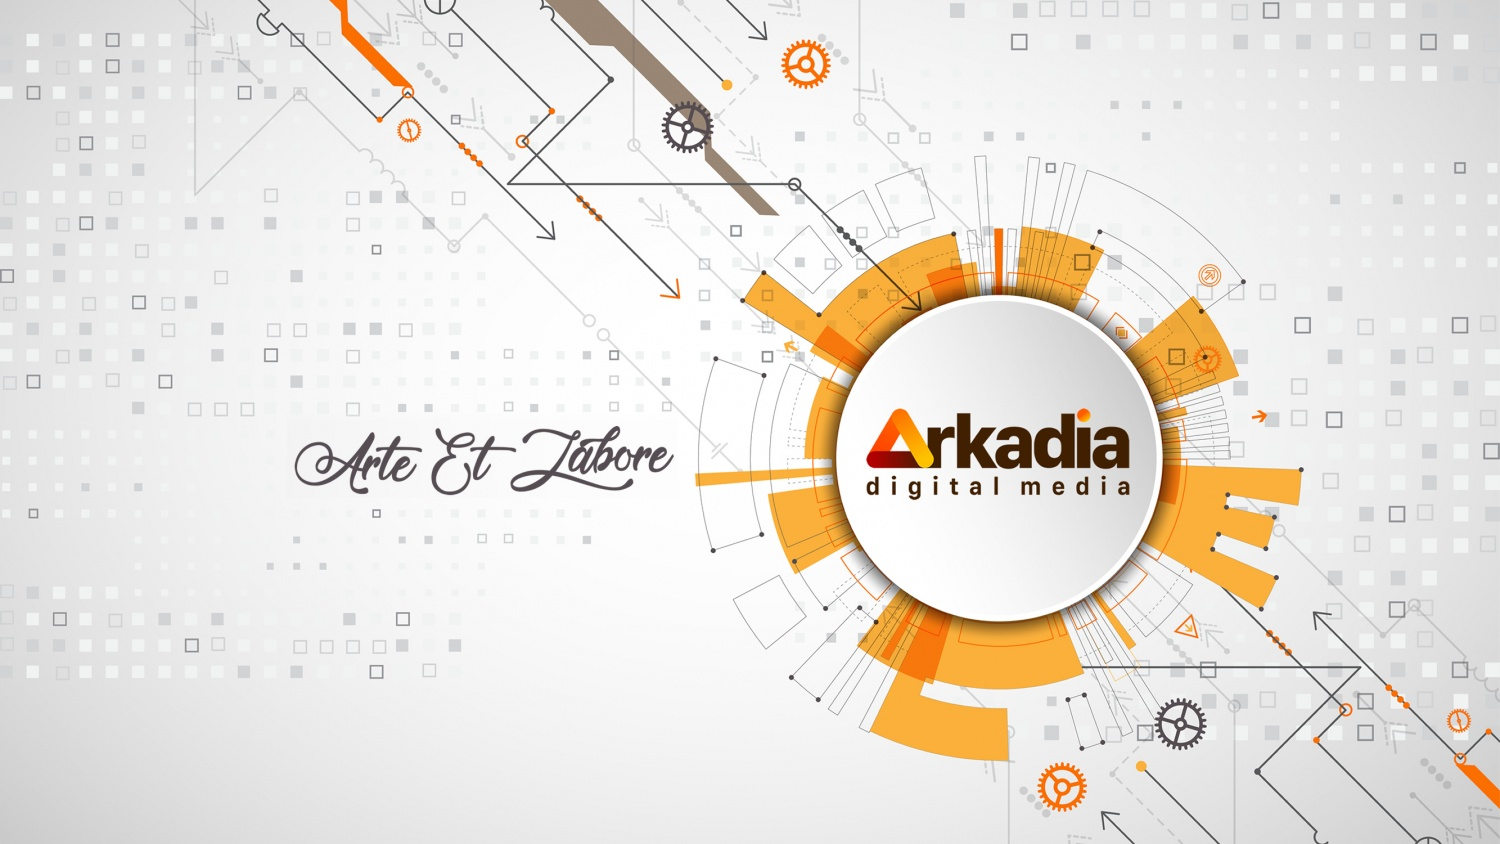 DIGI Arkadia Digital Media to launch private placement - IDNFinancials